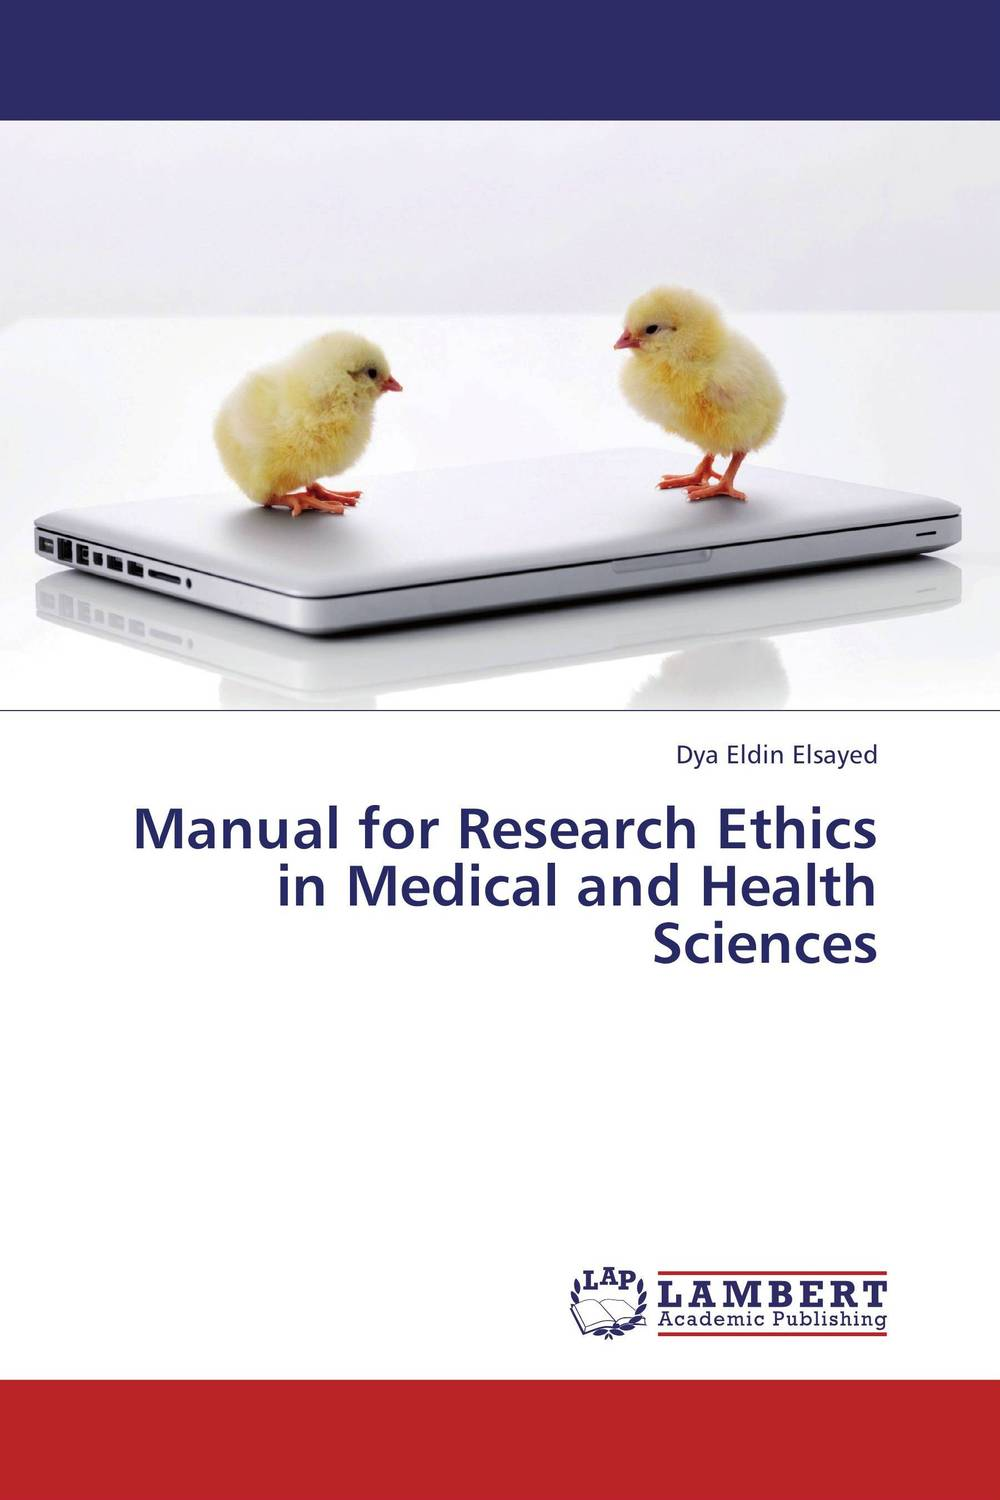 Manual for Research Ethics in Medical and Health Sciences